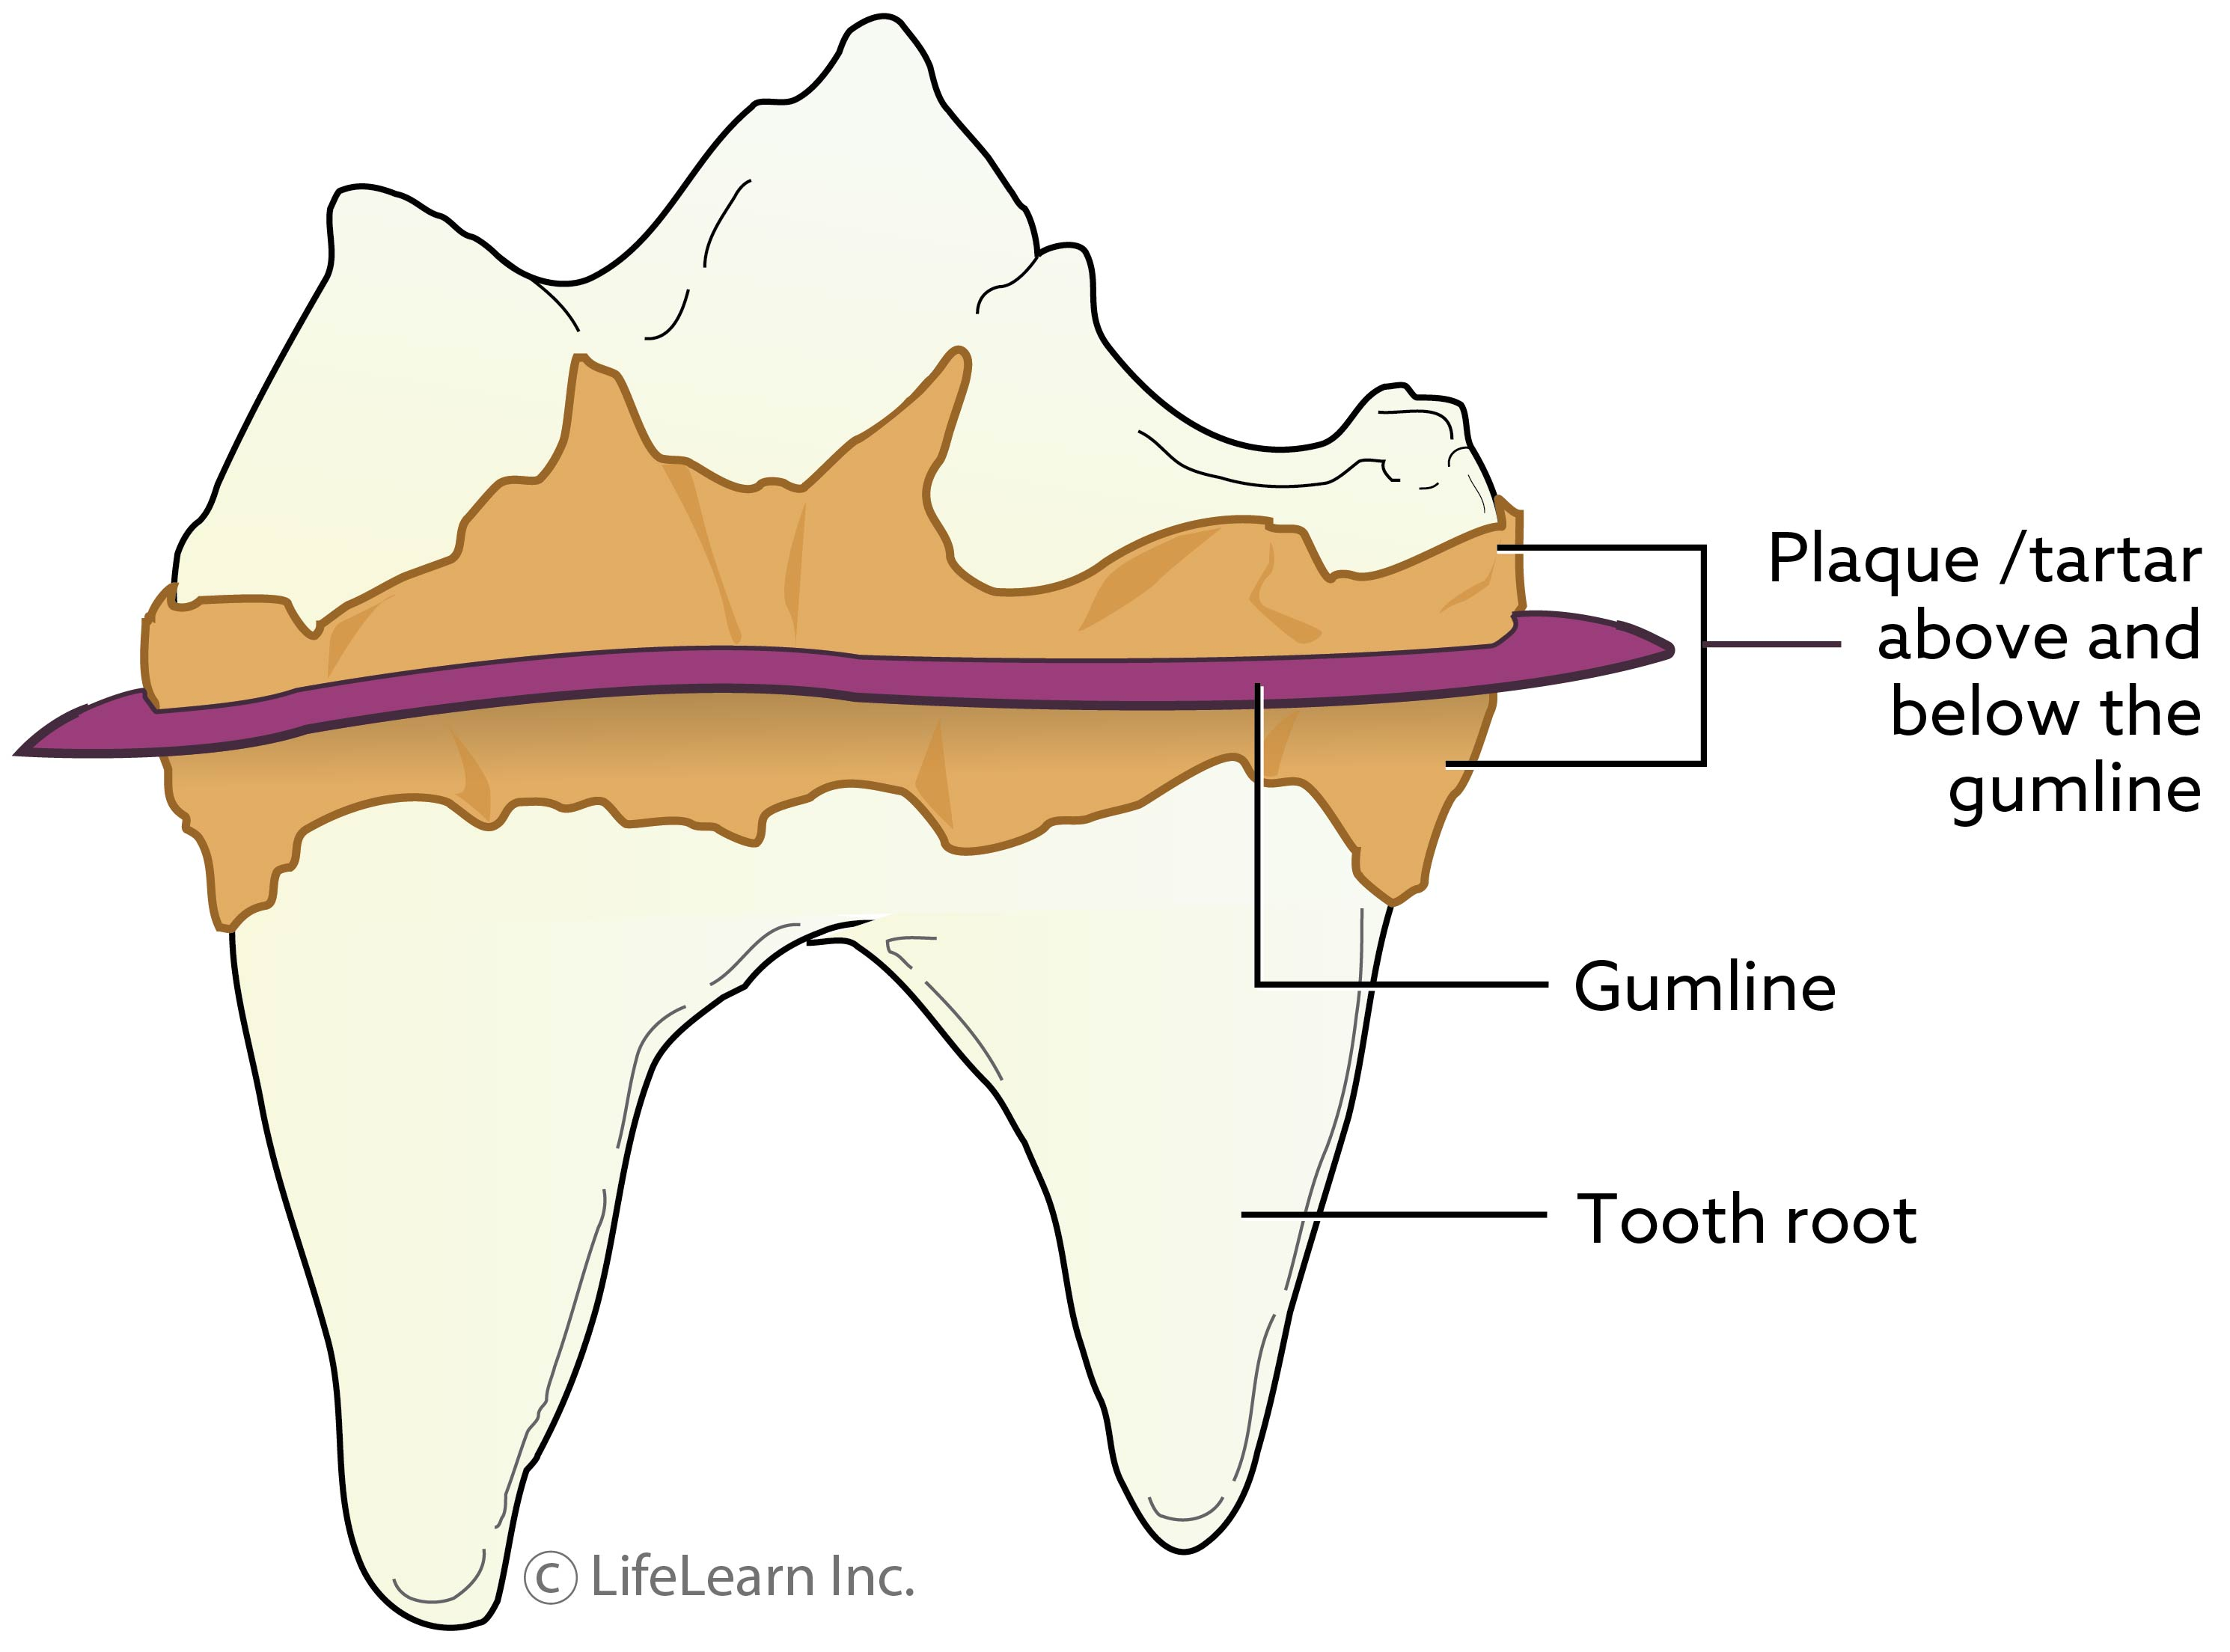 tooth-plaque_updated2017-01